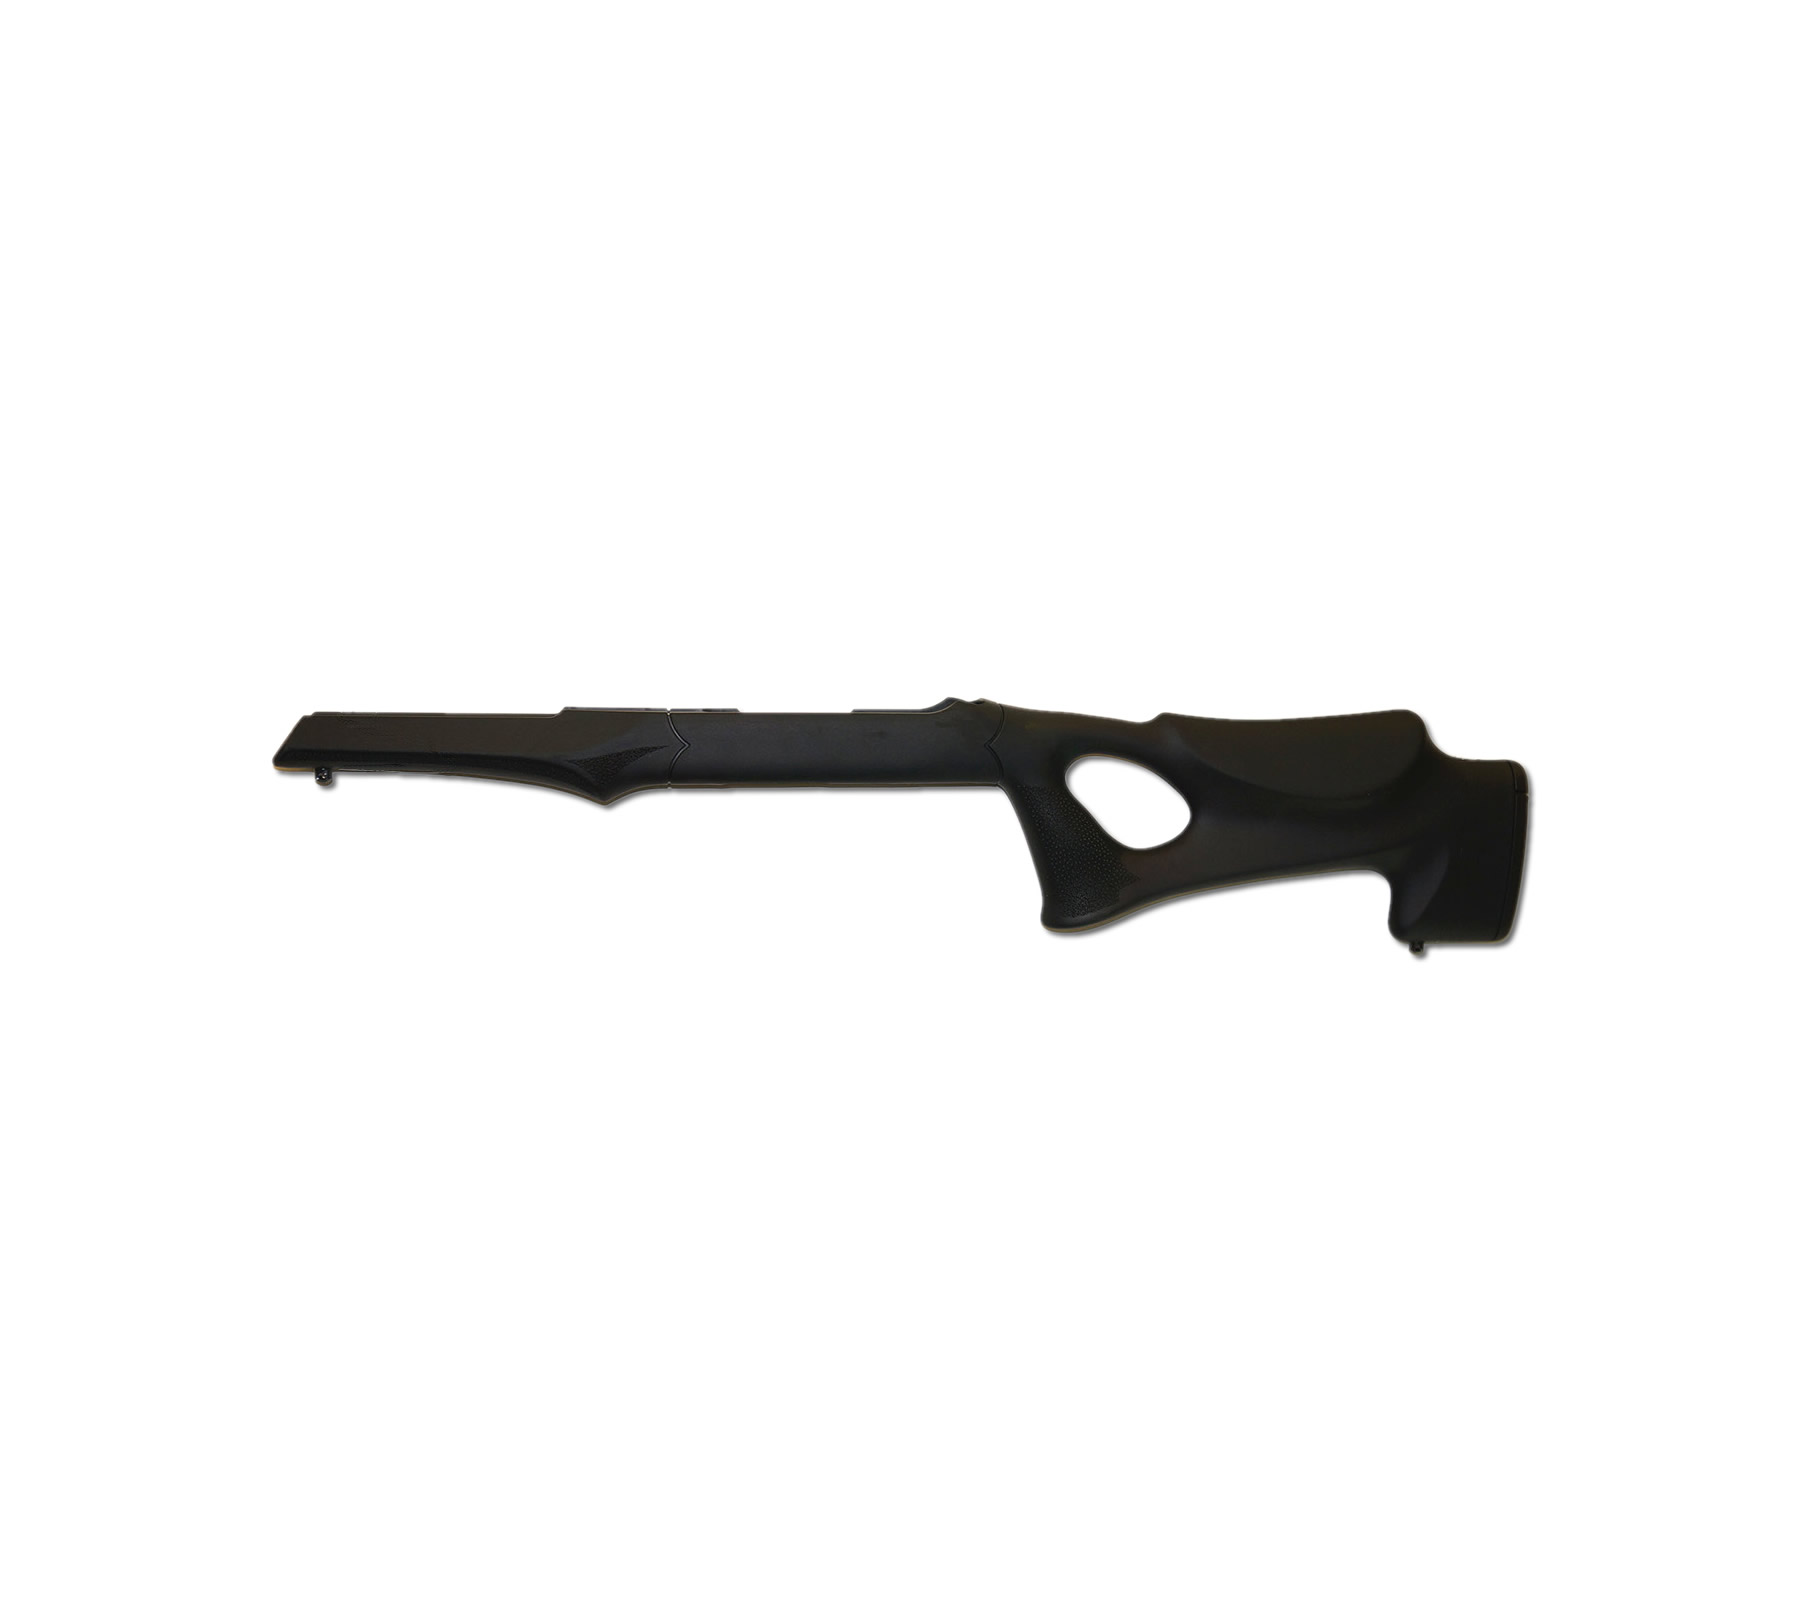 Hogue 10-22 Tactical Thumbhole Stock .920 Barrel Channel Black OverMolded Rubber